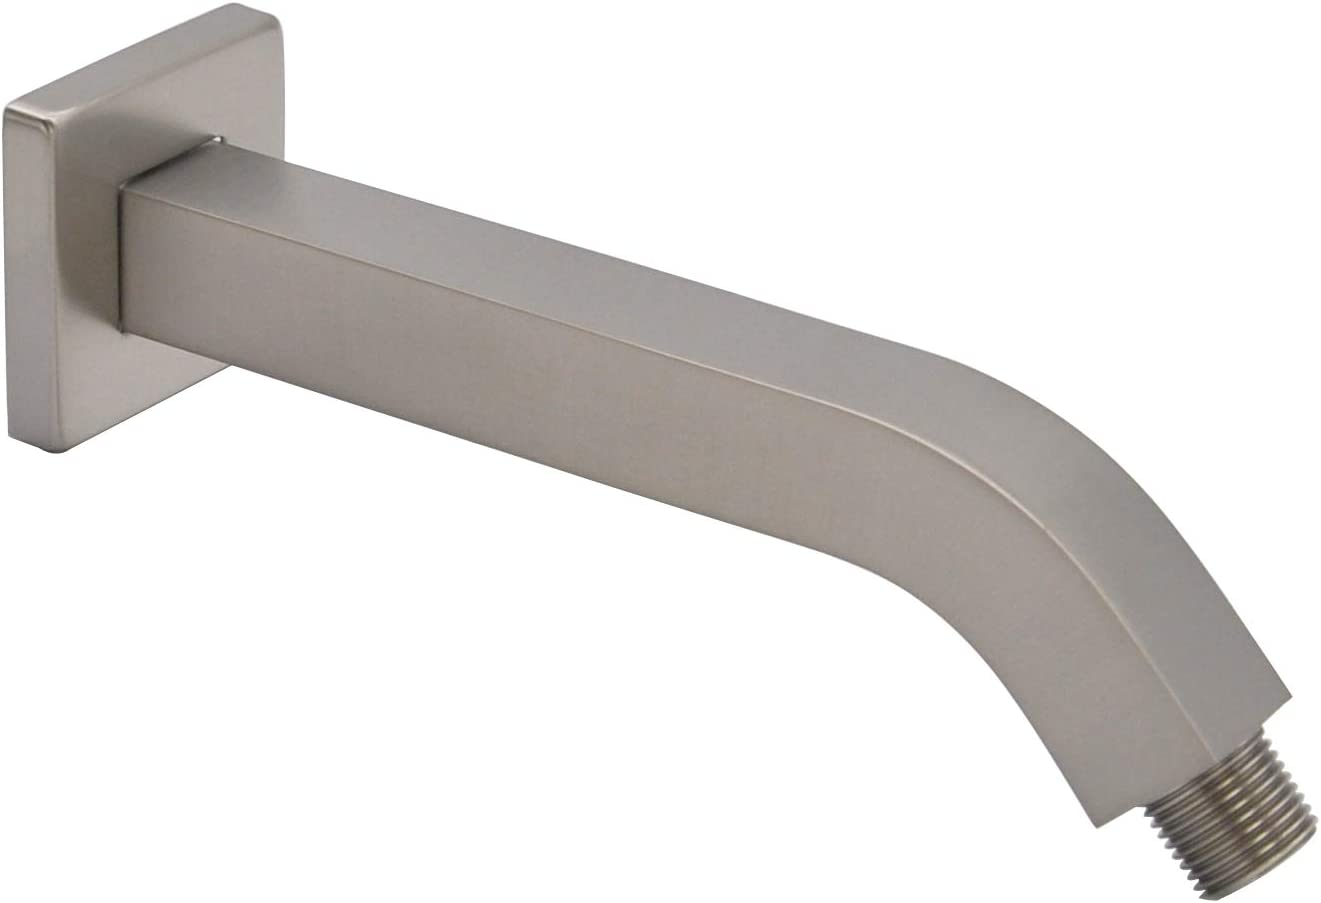 Aquaiaw Shower Arm and Flange 8 Square Max 86% OFF inch Solid Brass Both Popular products